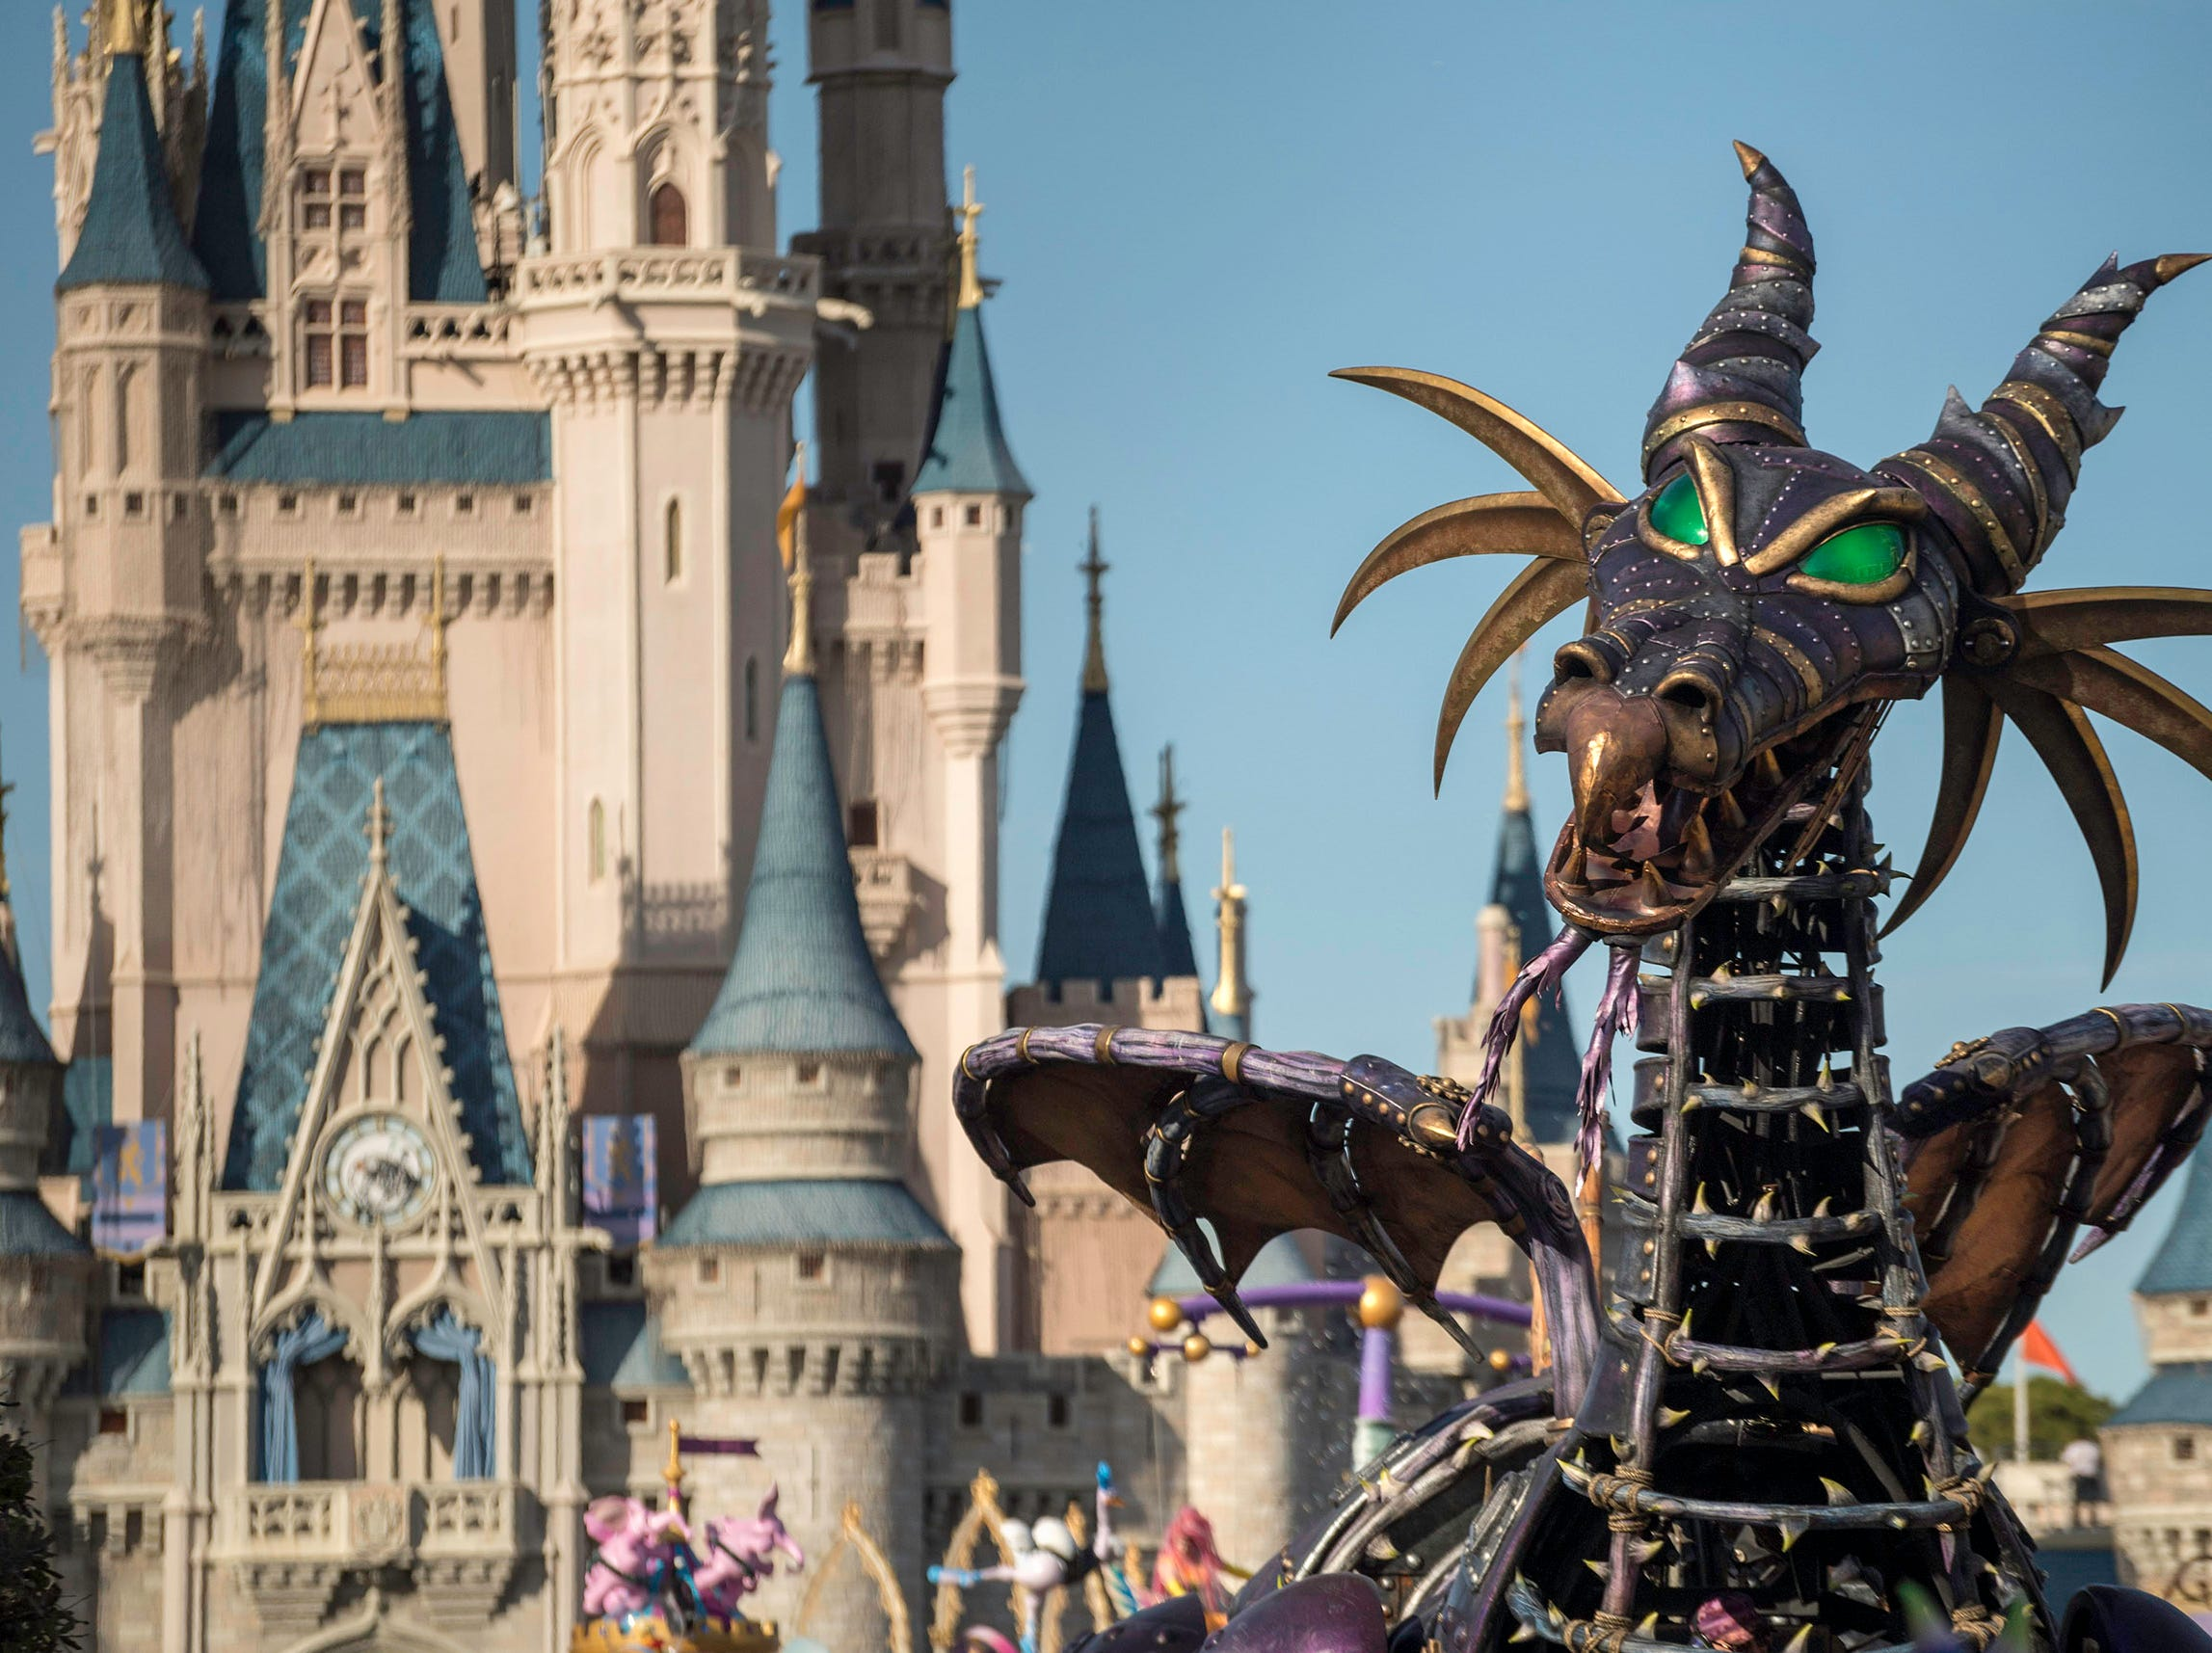 Maleficent returned to Disney's Festival of Fantasy parade at Magic Kingdom Park at Walt Disney World in Lake Buena Vista, Fla., Jan. 25, 2019.